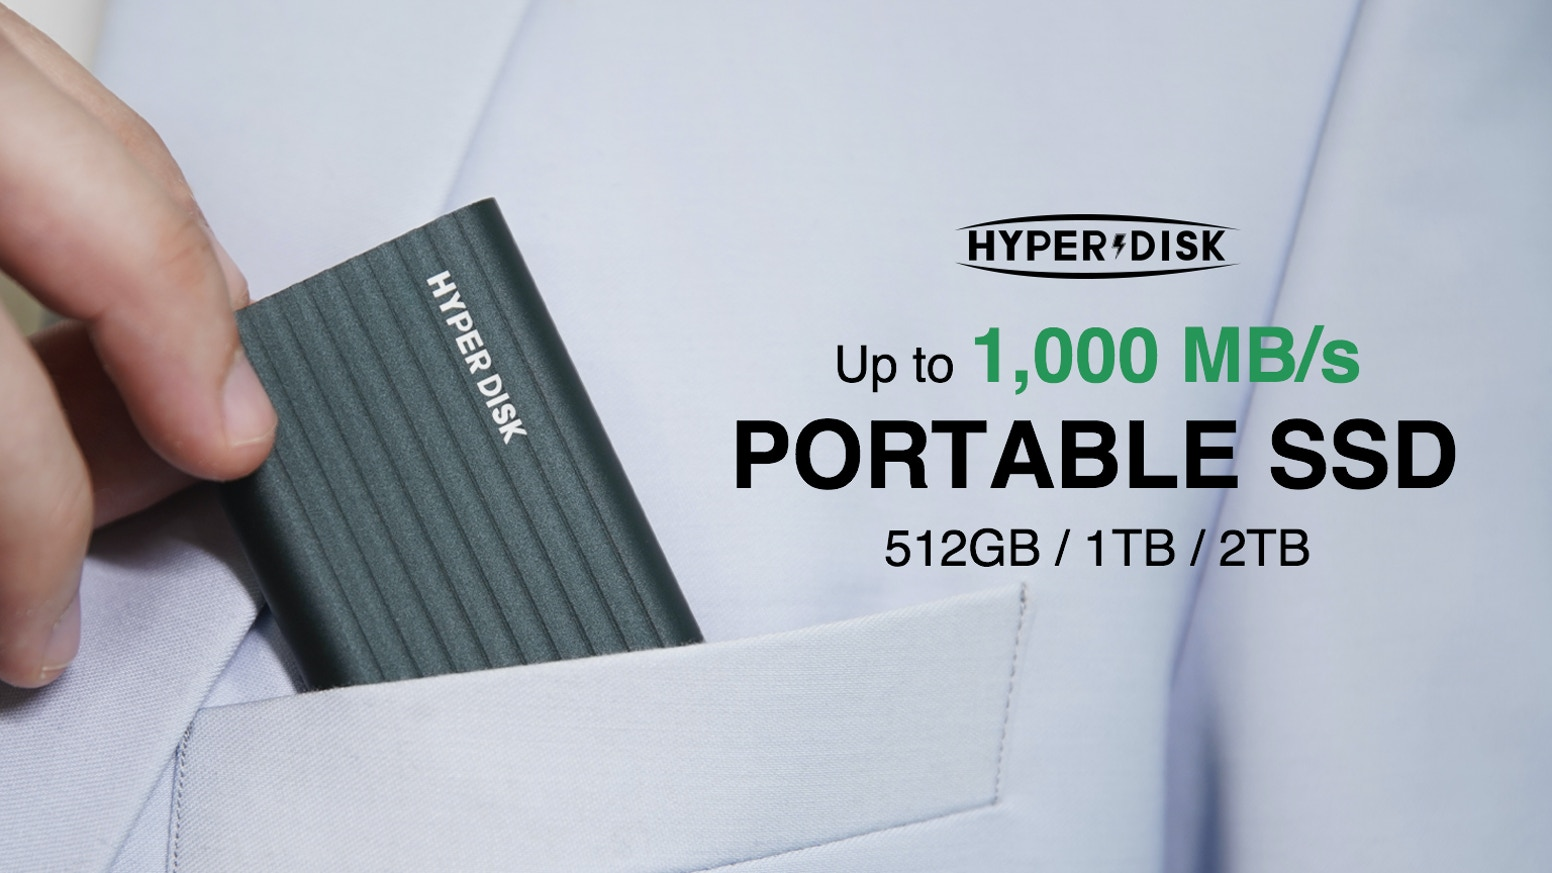 A 45g and pocket-sized Portable SSD with up to 1,000 MB/s read/write speed, compatible with your phones, pads, MACs and PCs.